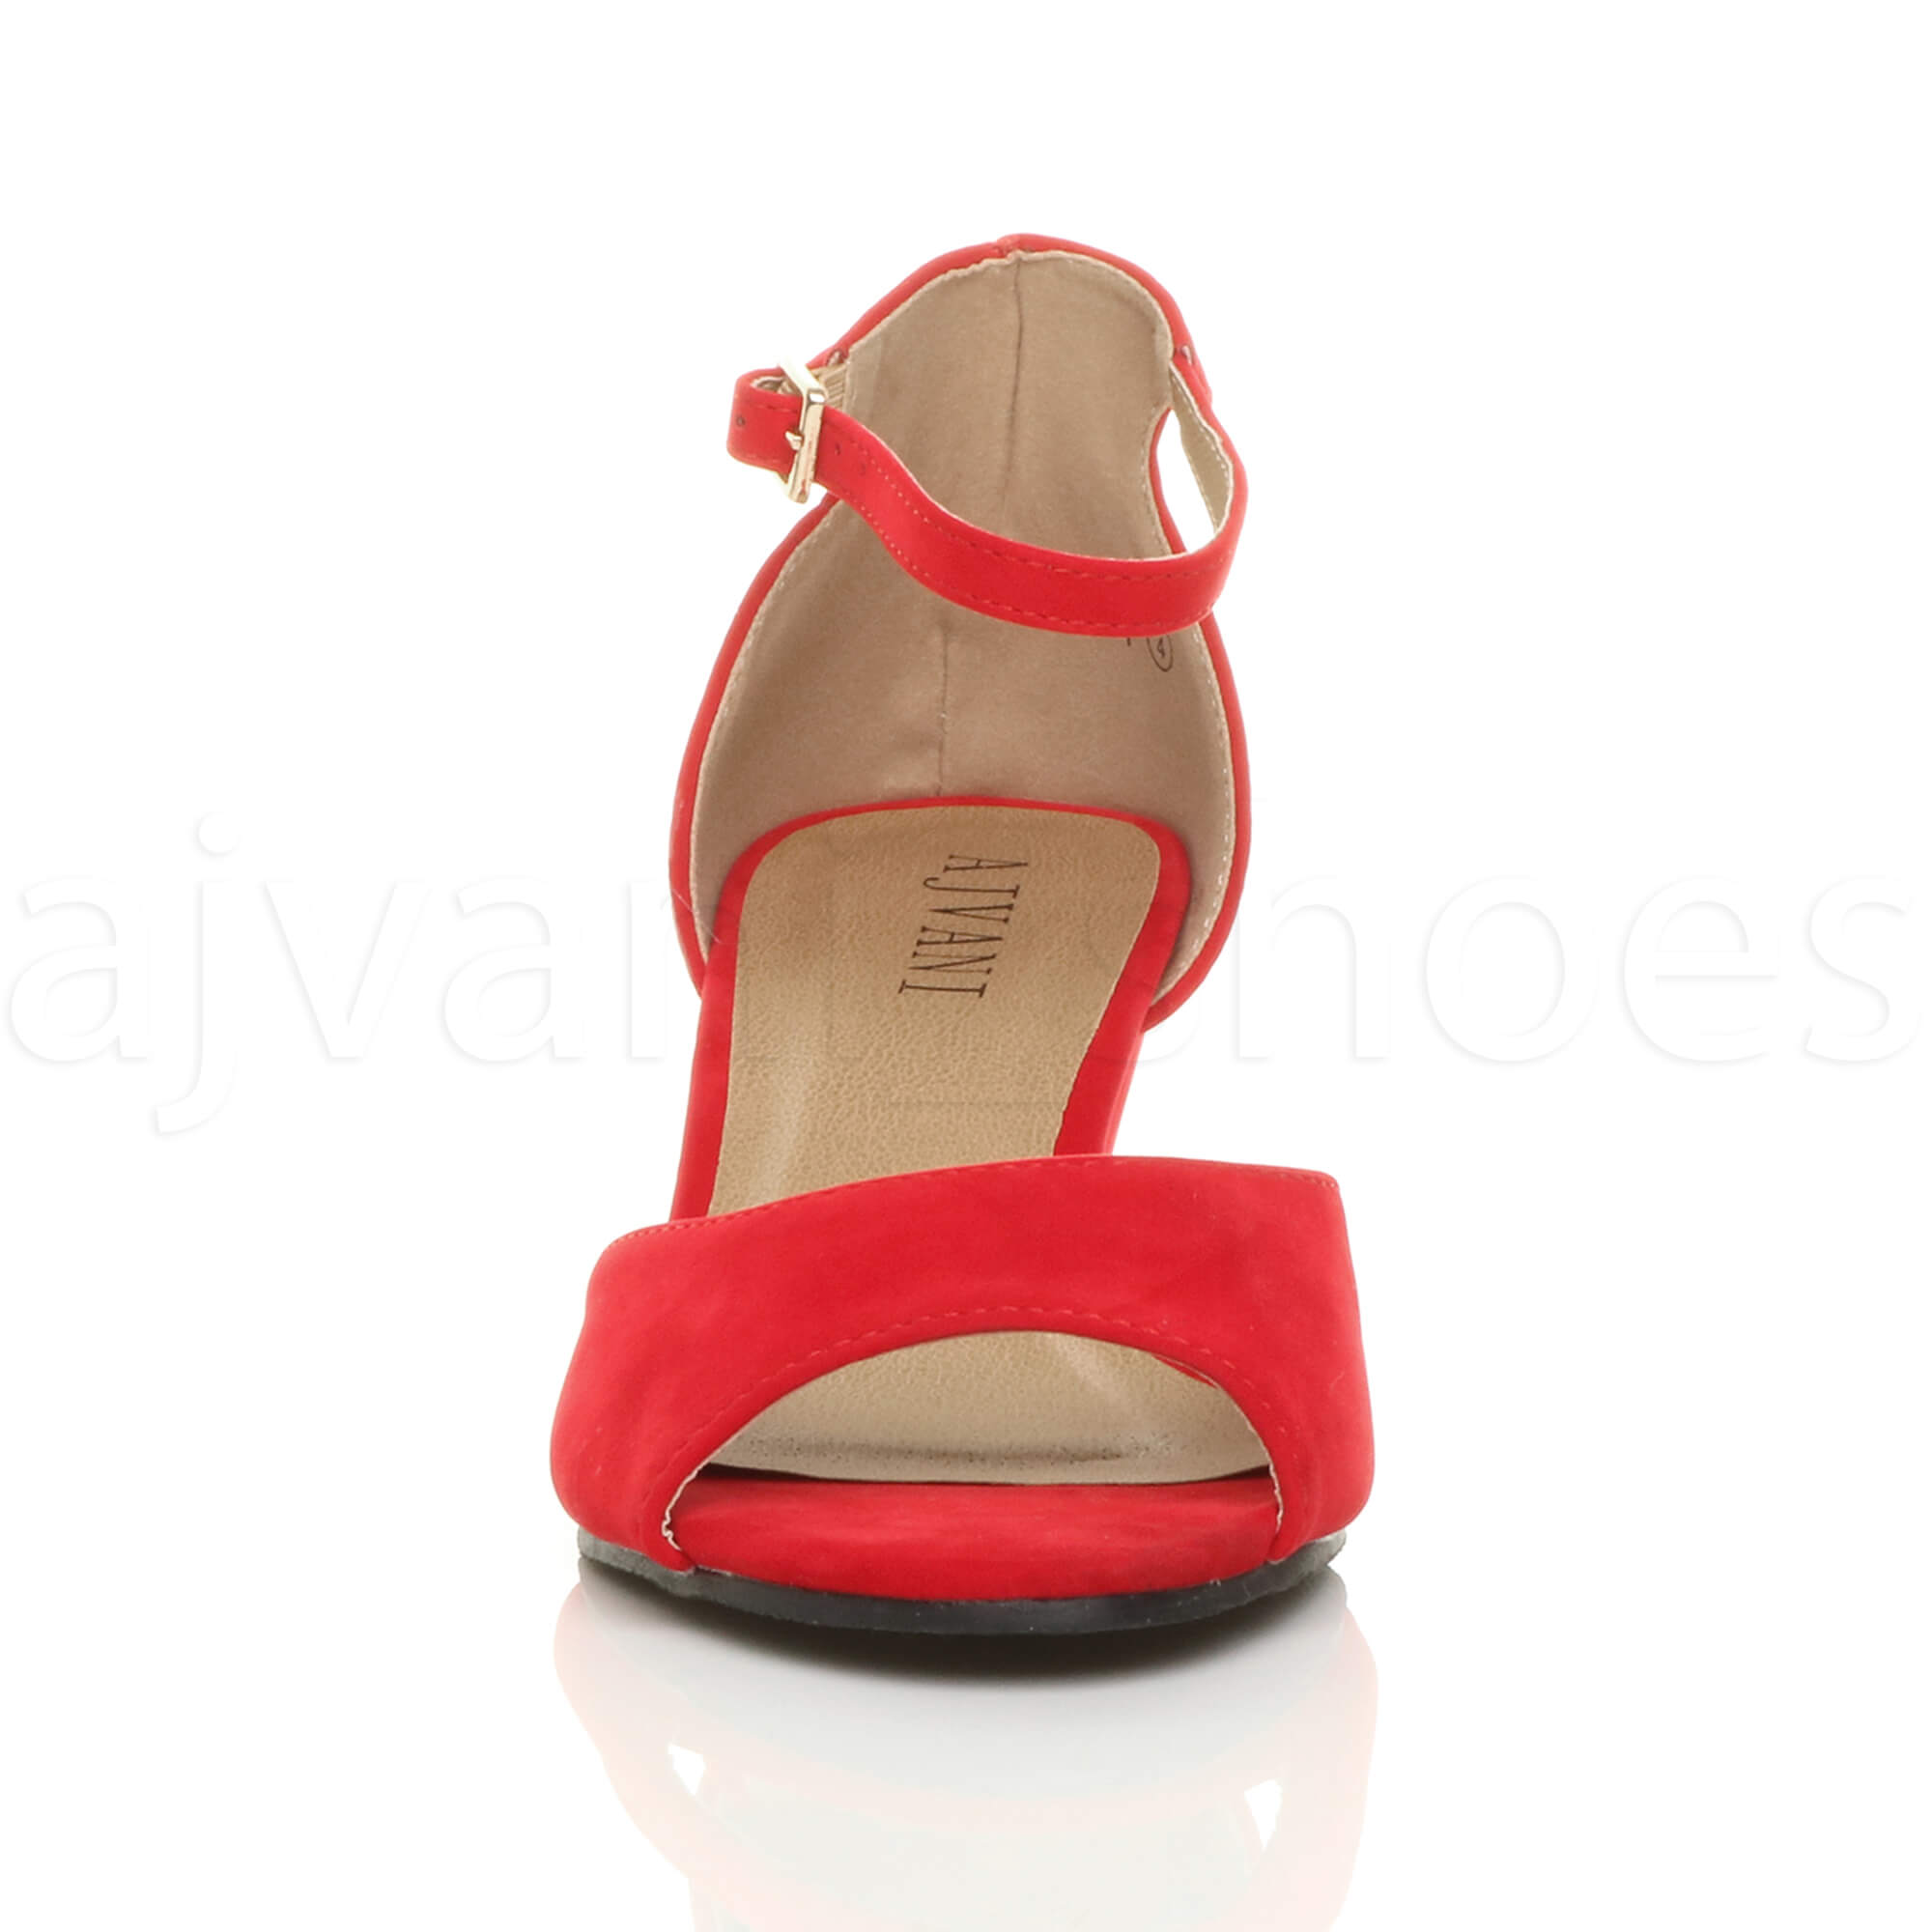 WOMENS-LADIES-LOW-MID-WEDGE-HEEL-ANKLE-STRAP-SMART-CASUAL-EVENING-SANDALS-SIZE thumbnail 127